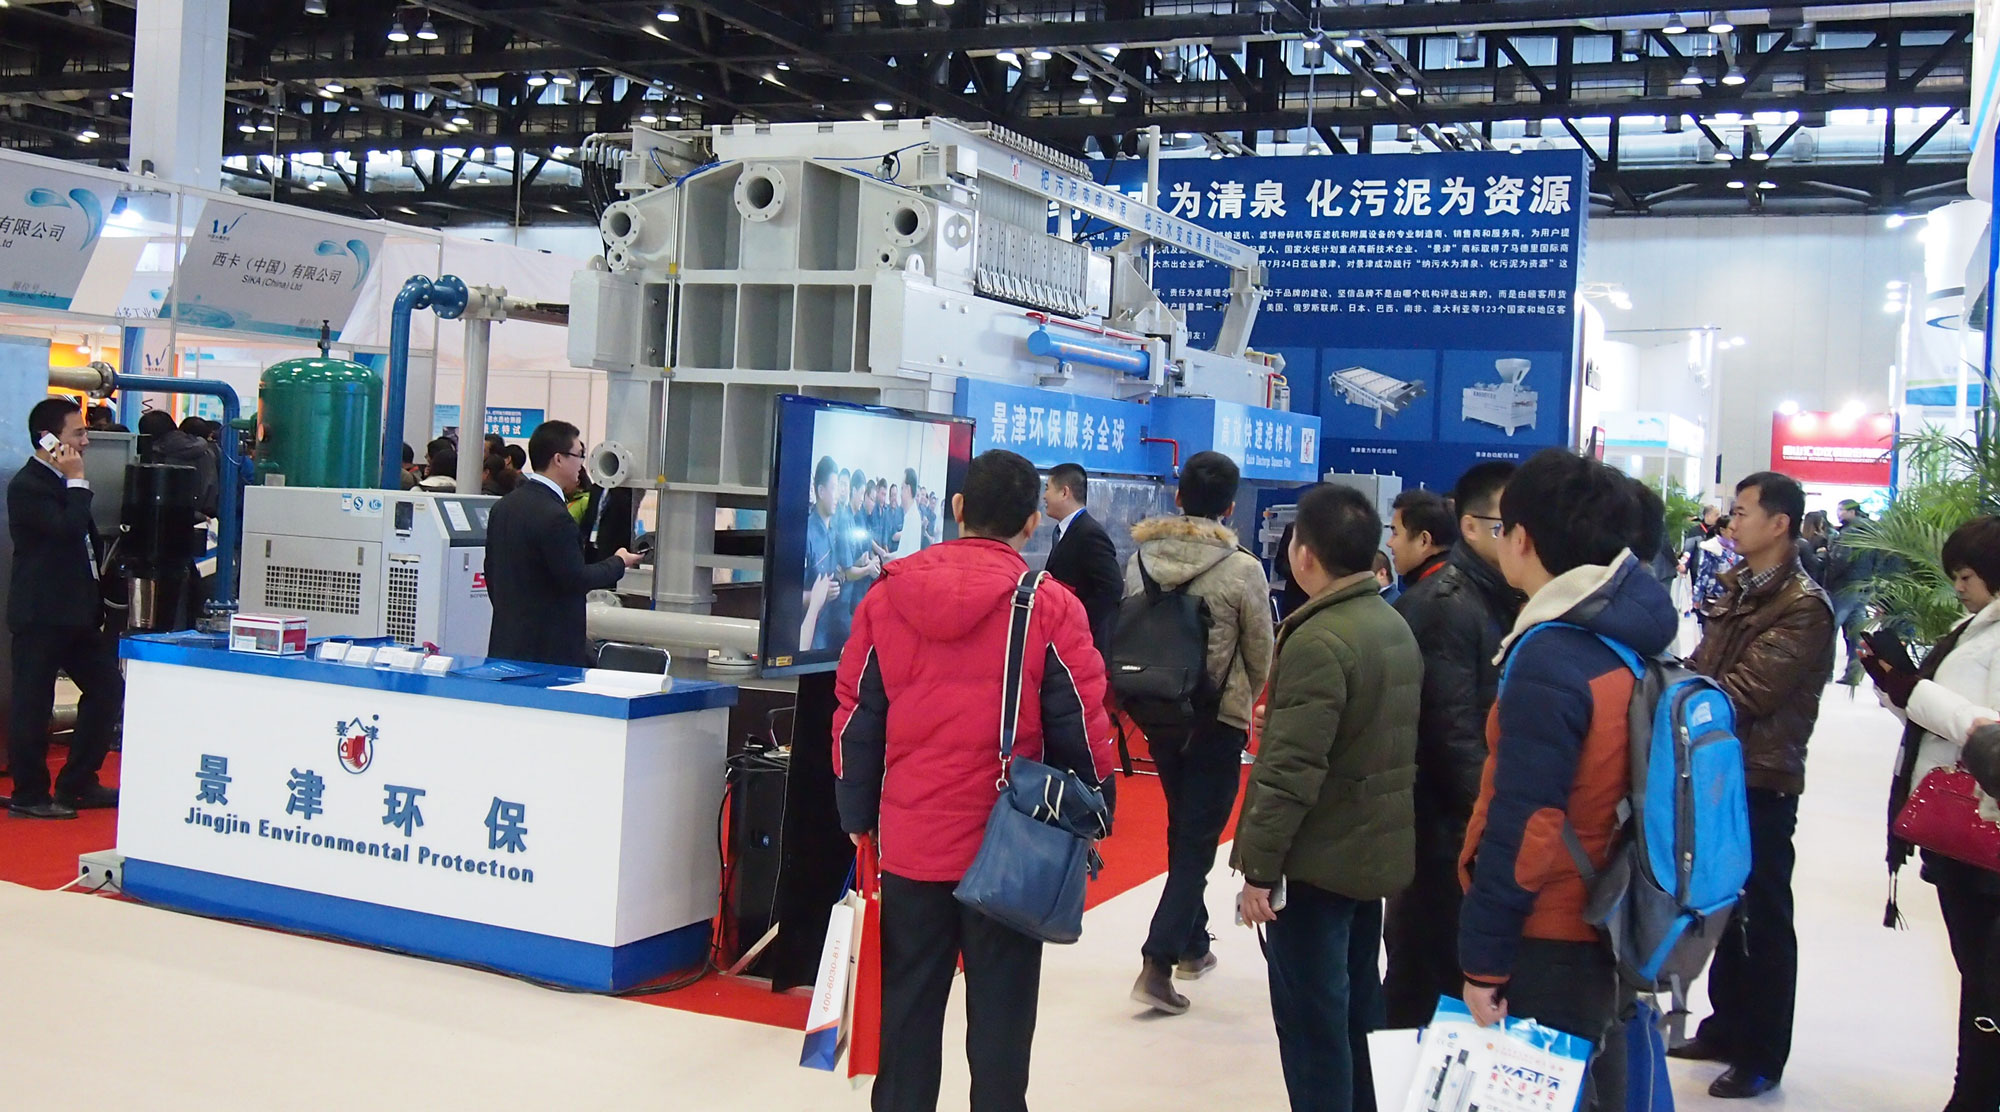 Beijing Water Expo China Exhibition Area